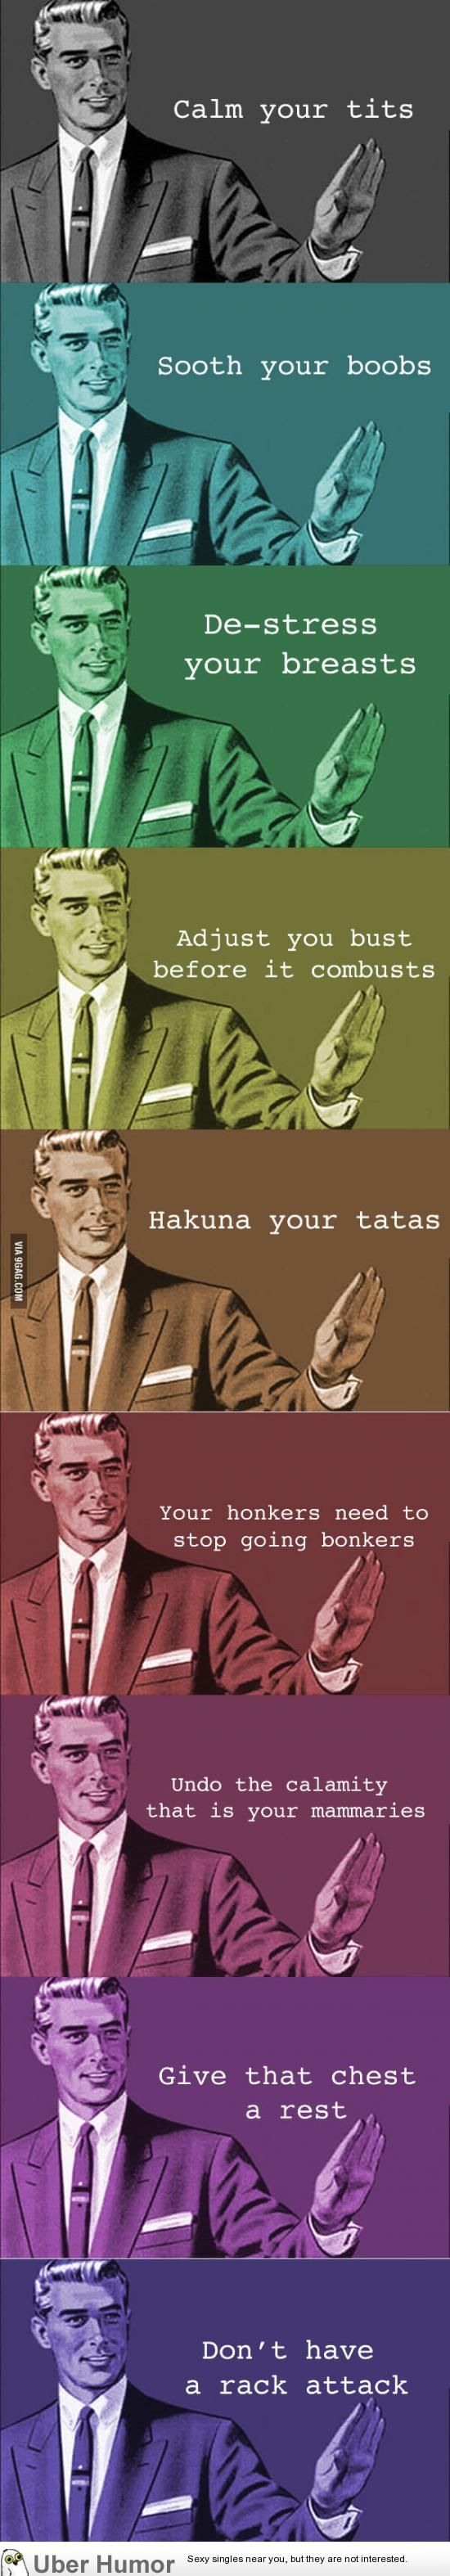 well that's one thing to yell to people with large cups running down the road xD (Hakuna your tatas xD)